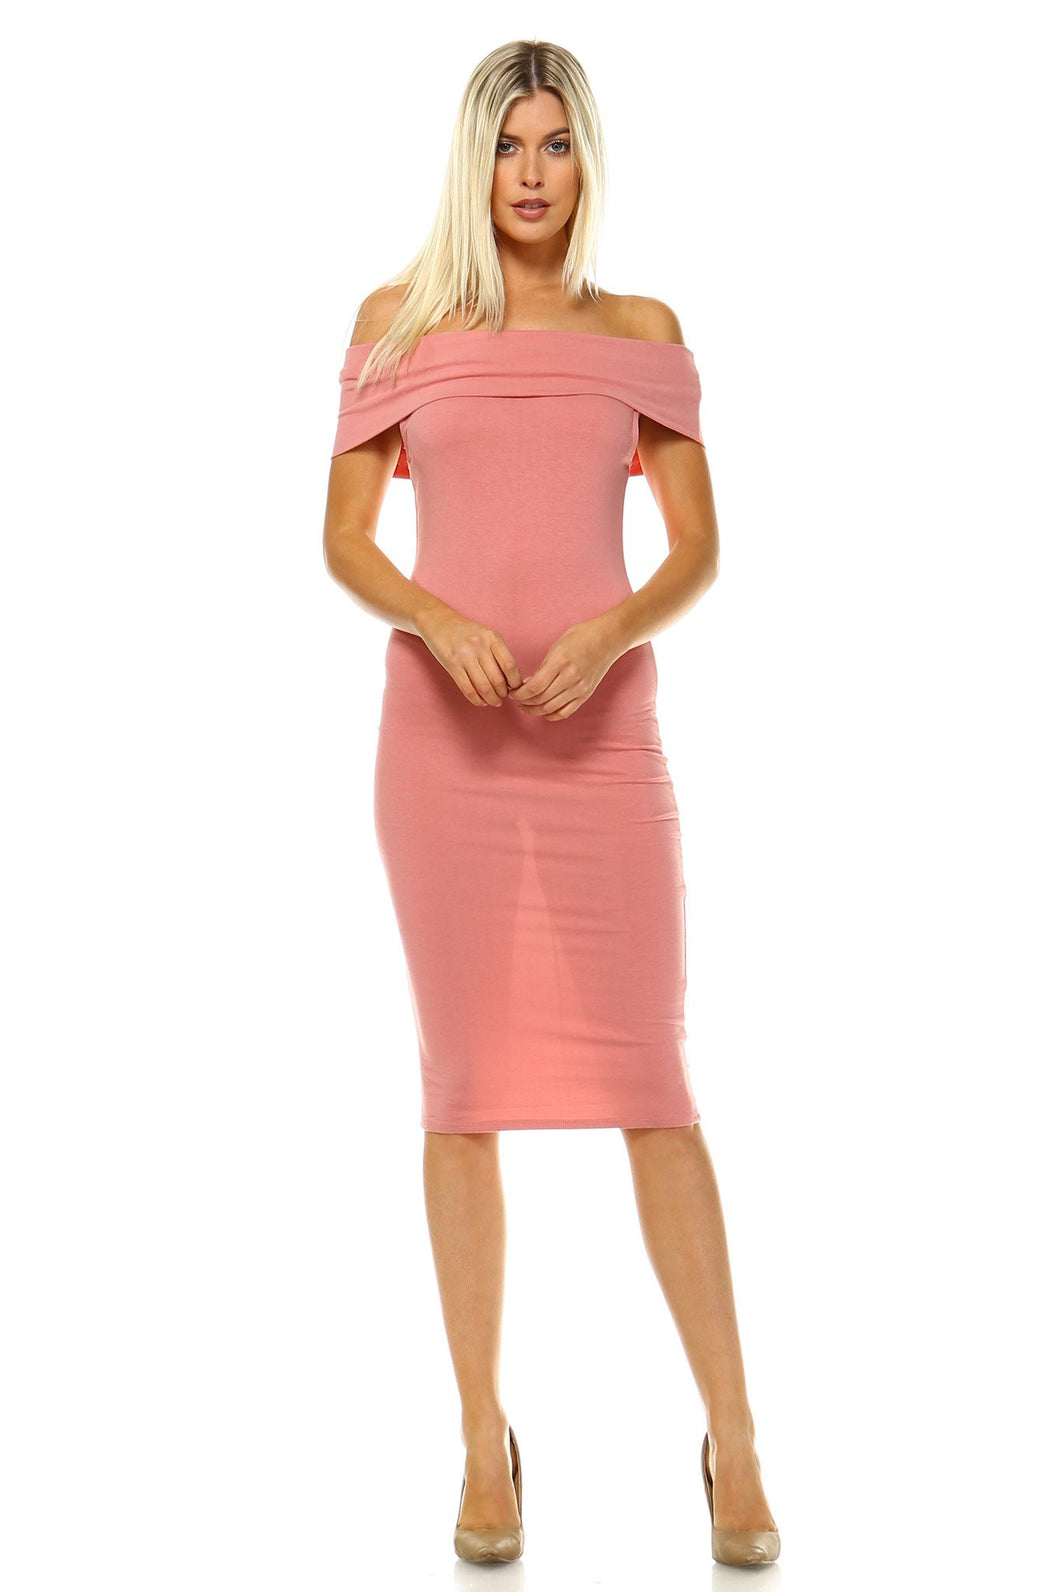 Off Shoulder Bodycon Dress - Comes In 3 Colors